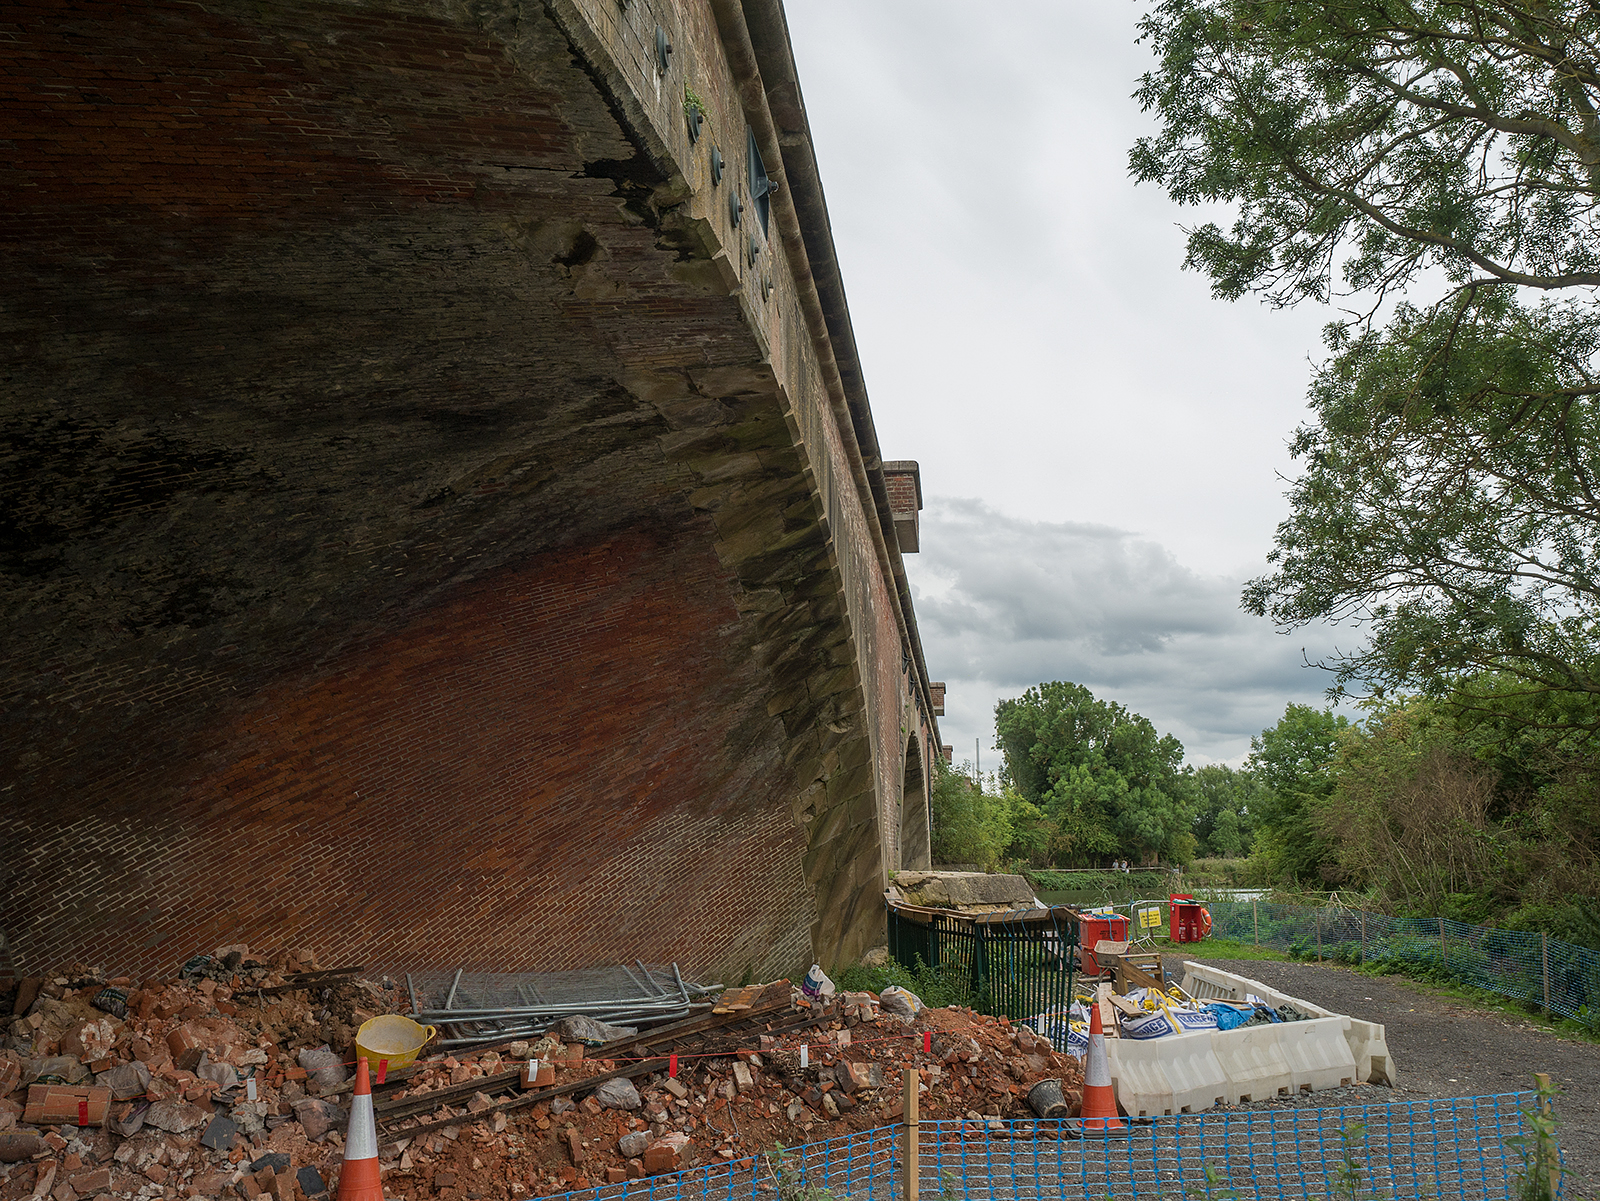 Repairing the brickwork at the railway bridge